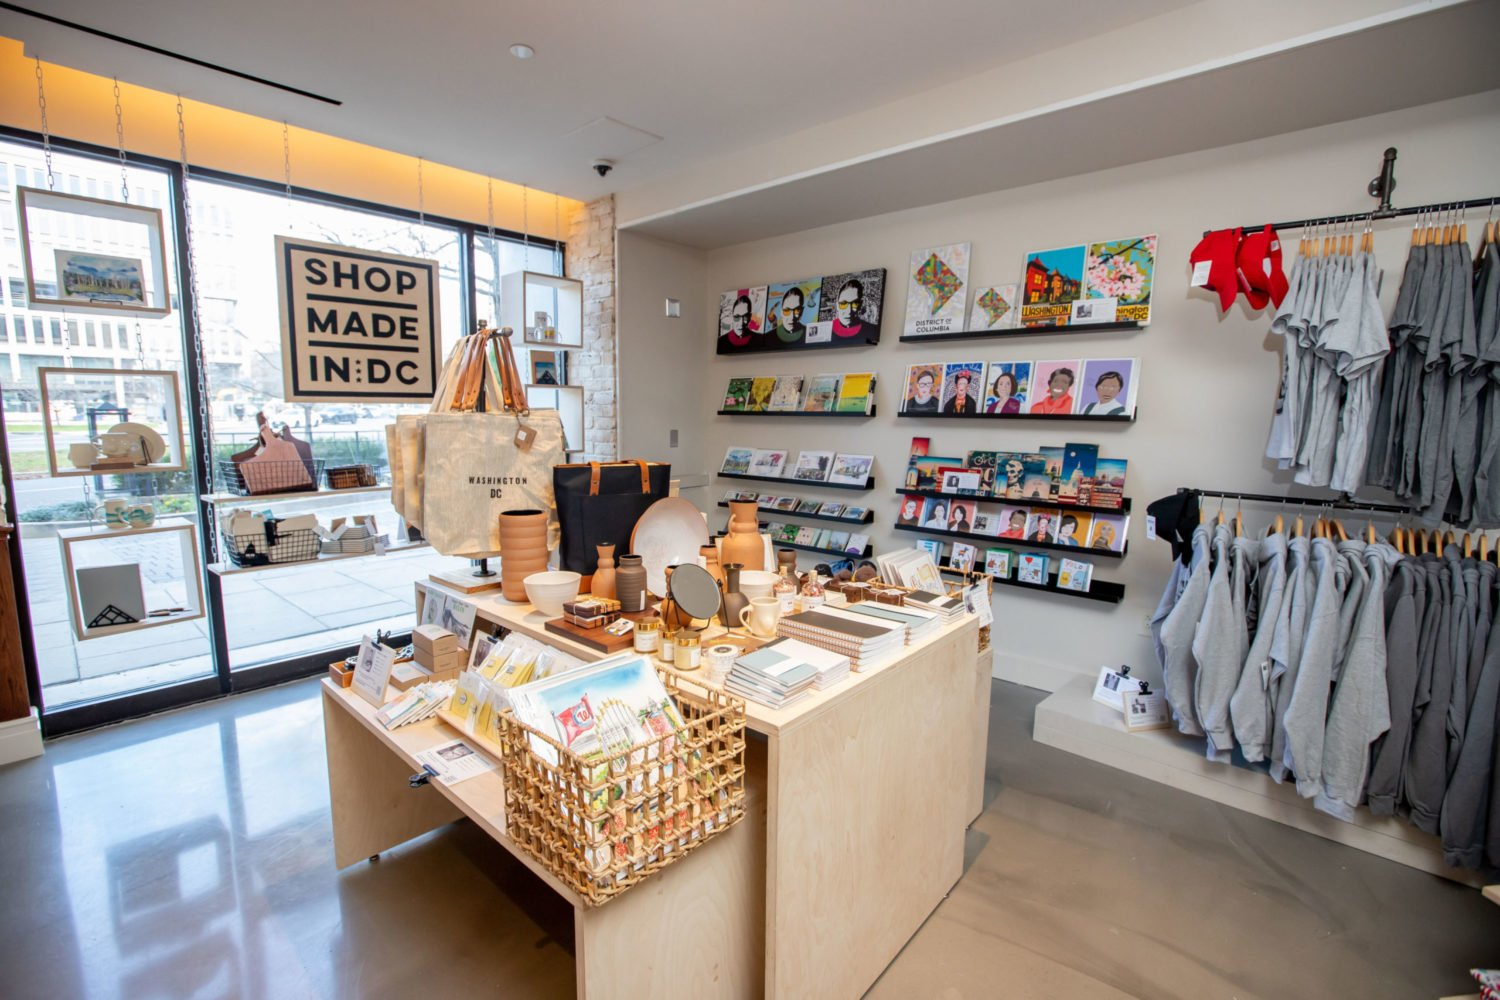 Shop Made In DC is the only retailer opening at the Roost. Photo courtesy of Shop Made In DC.